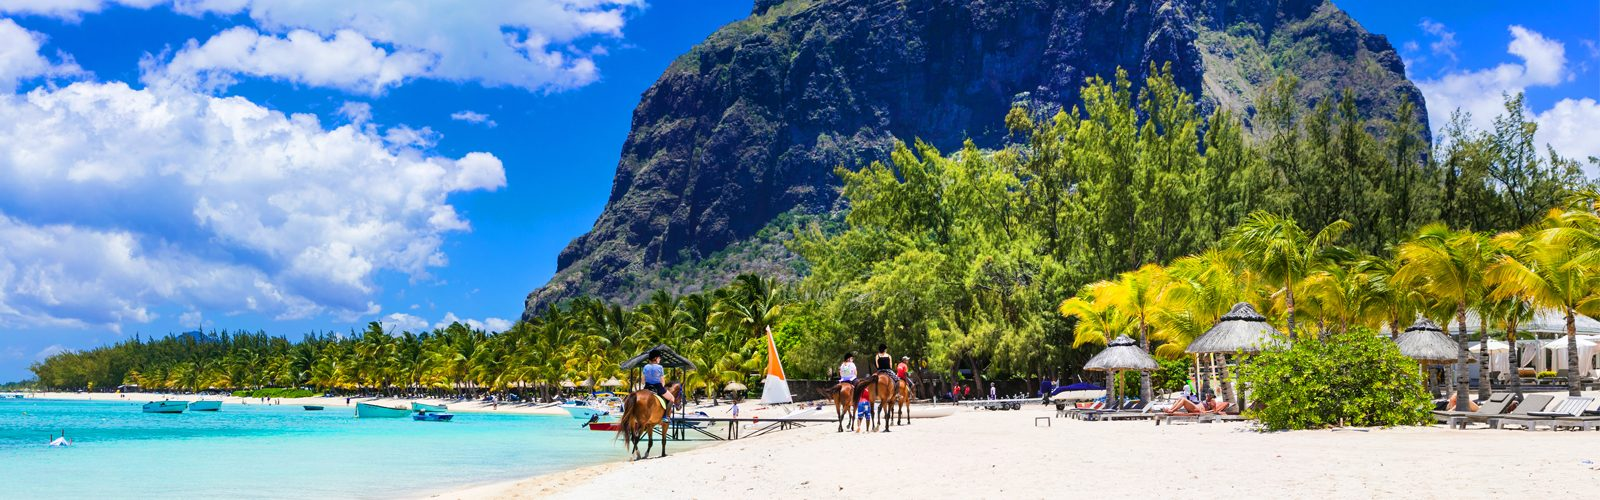 Top Reasons Why Mauritius Is Great For A Family Holiday Header